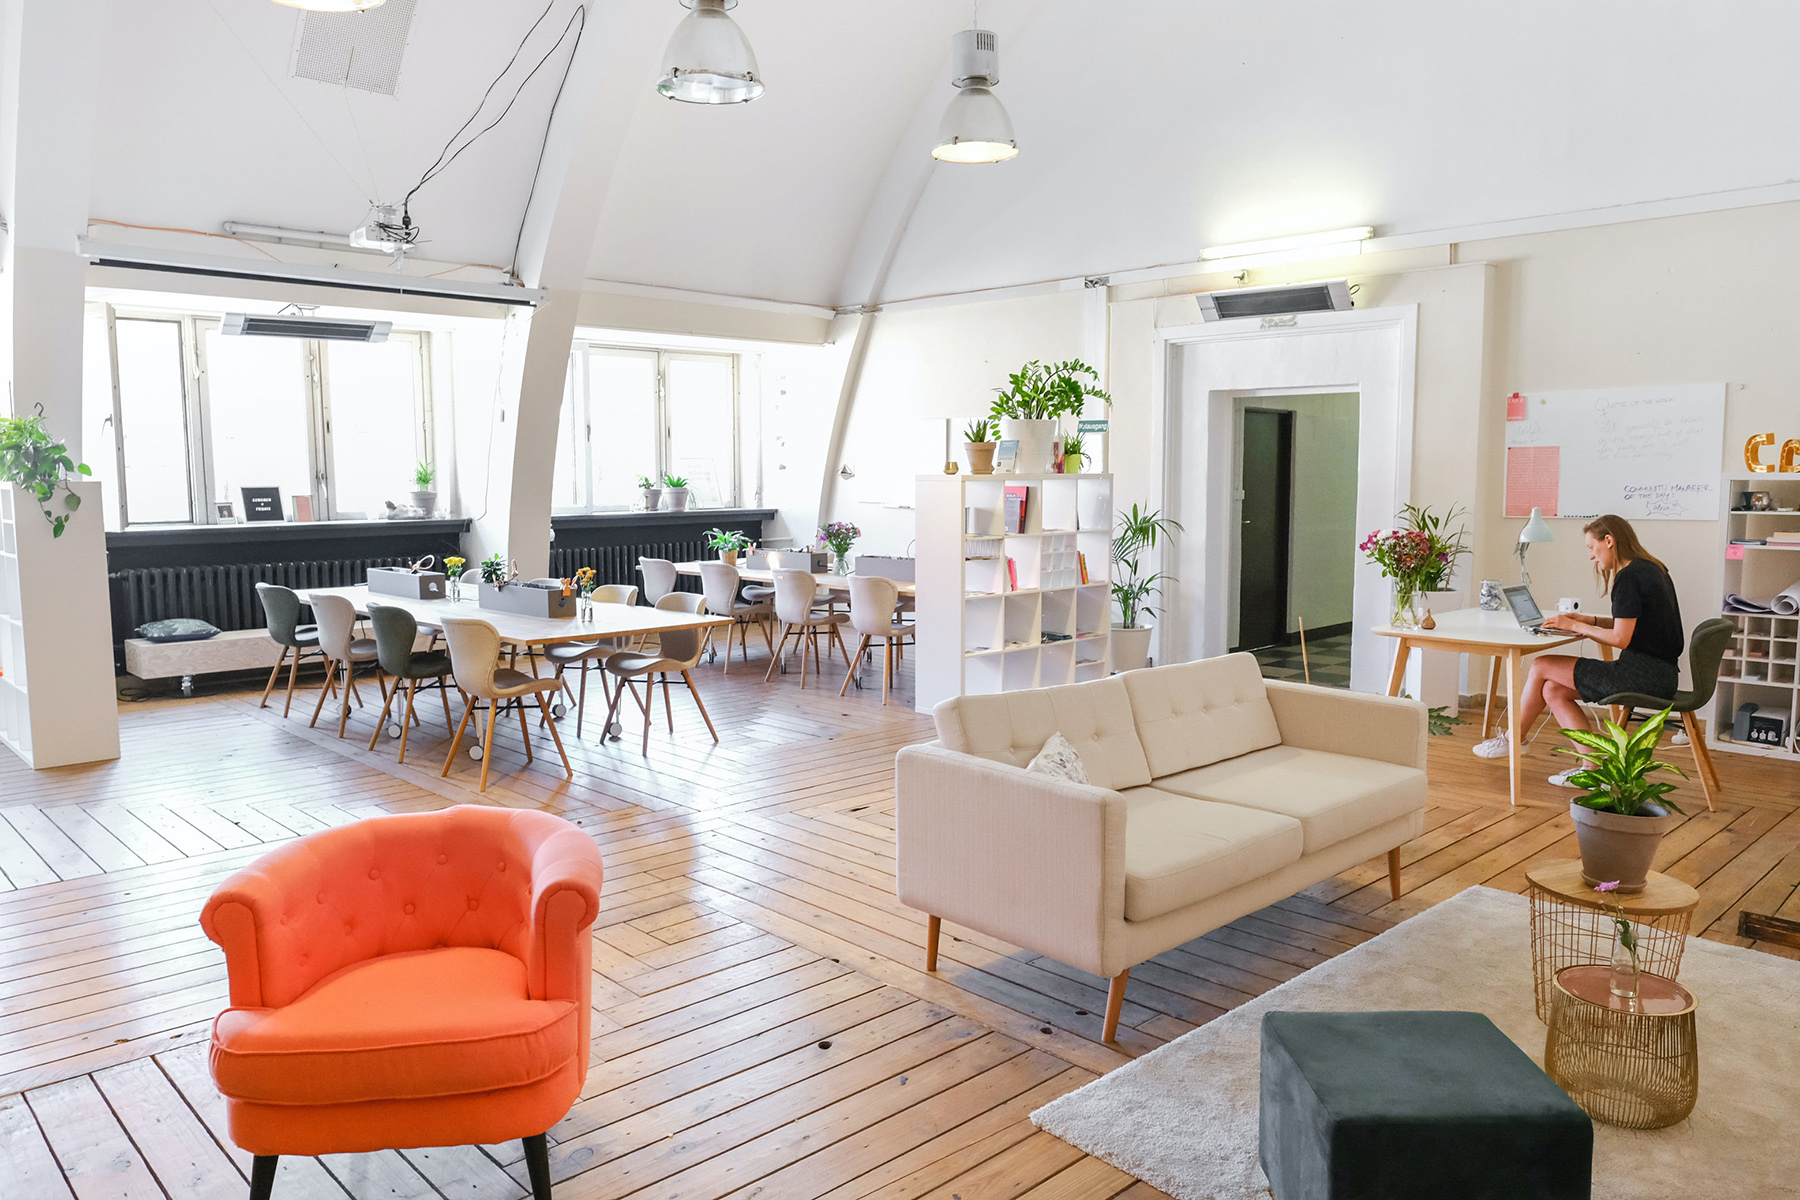 A bright and airy coworking space